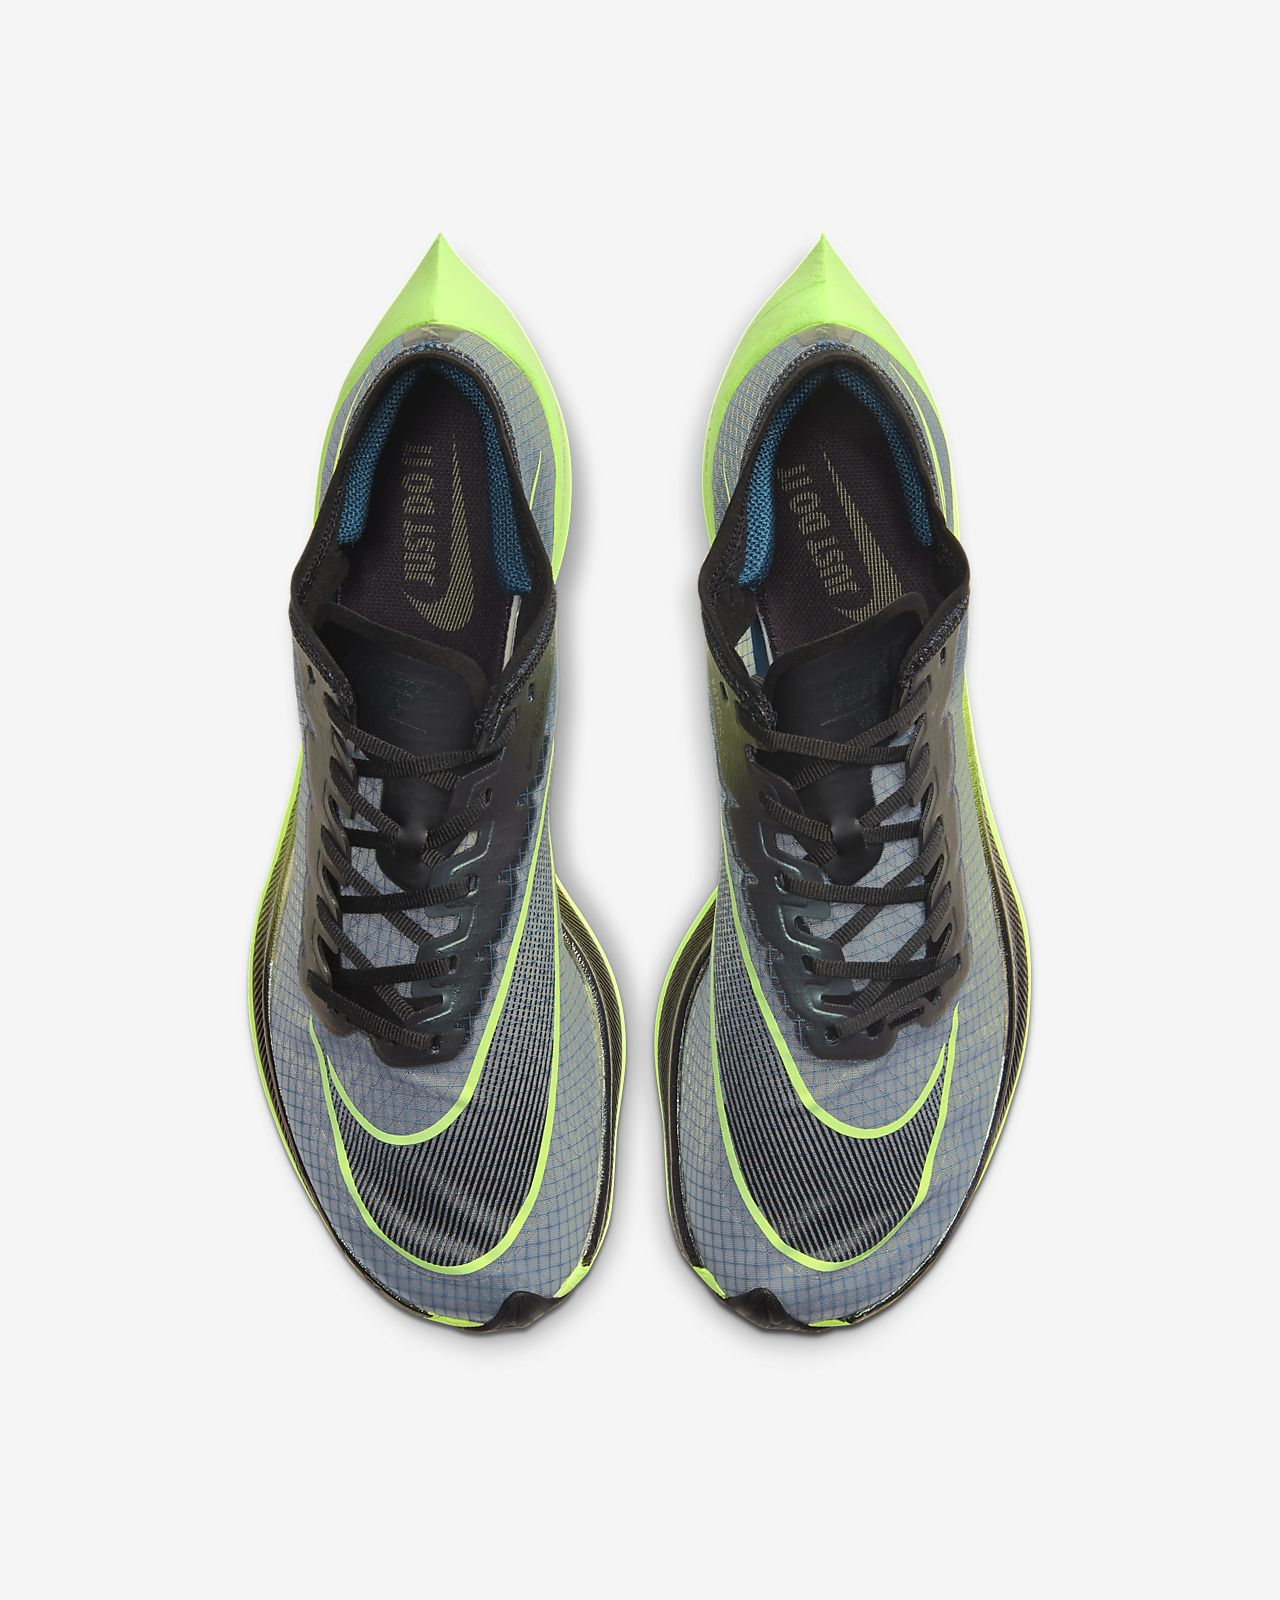 16 Best Nike Water Repellent Running Shoes (Buyer's Guide